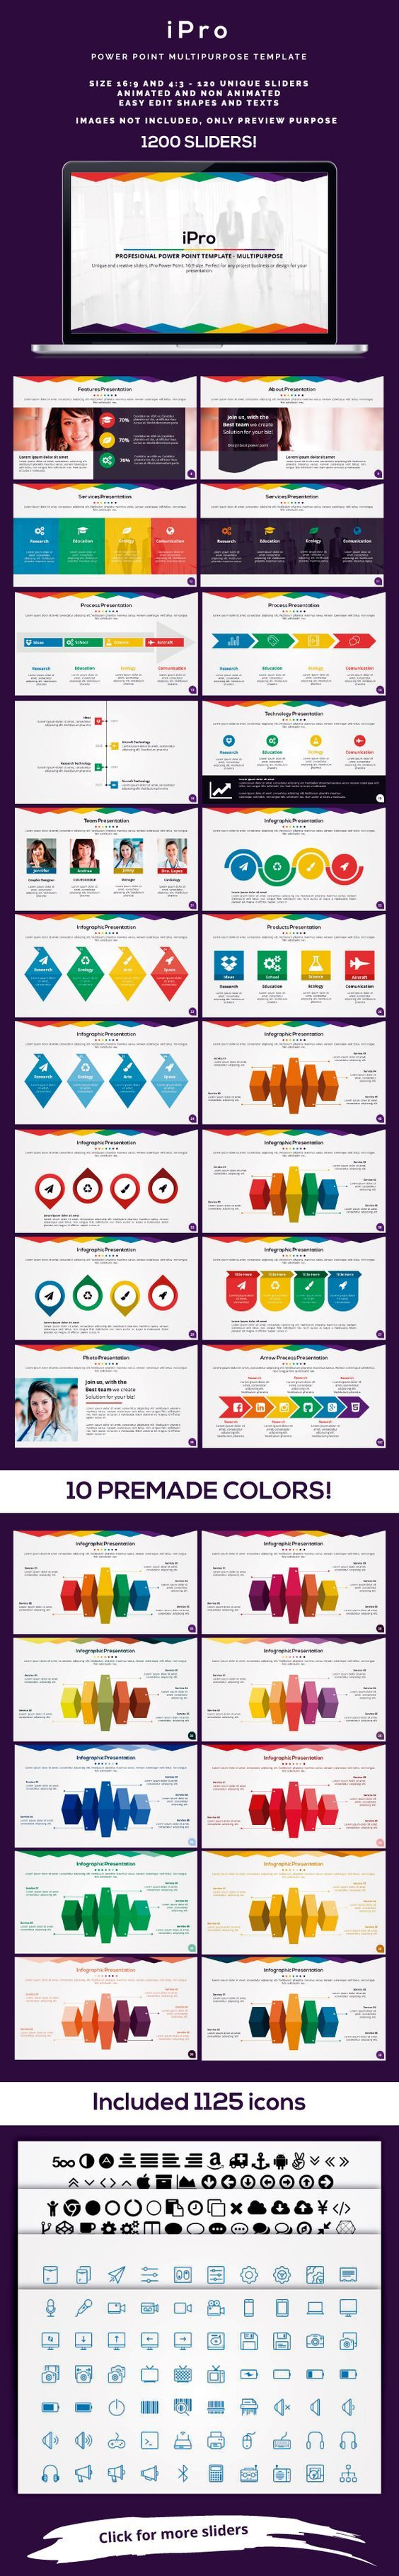 iPro PowerPoint Presentation Template. Download here: http://graphicriver.net/item/ipro-power-point/15483078?ref=ksioks: